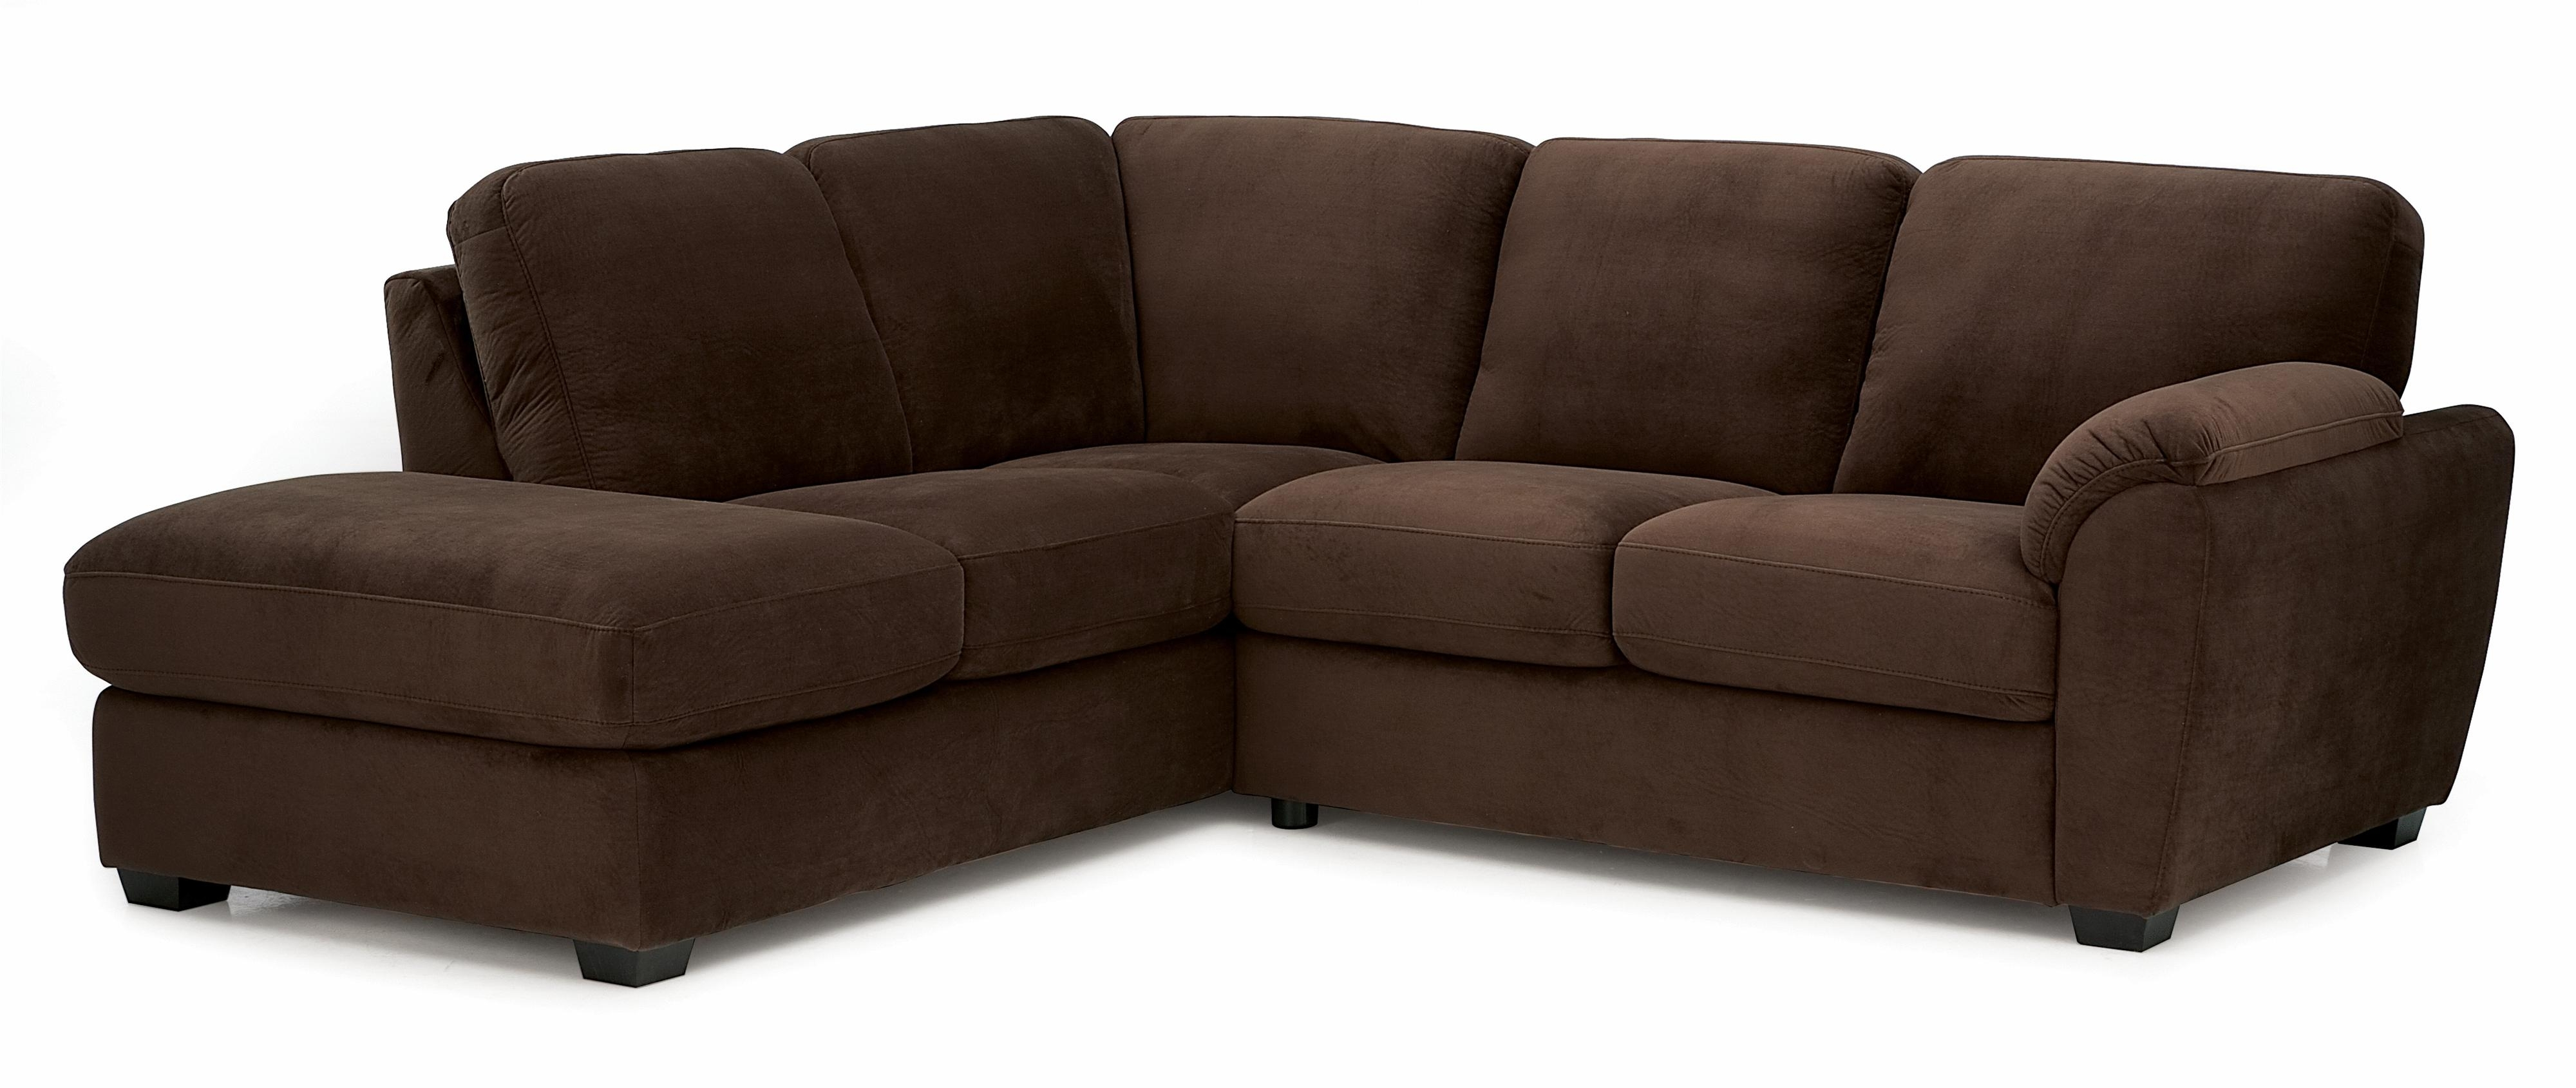 Lanza Two Piece Sectional Sofa With Rhf Chaisepalliser | Sofas For Sectional Sofas At Birmingham Al (View 6 of 15)